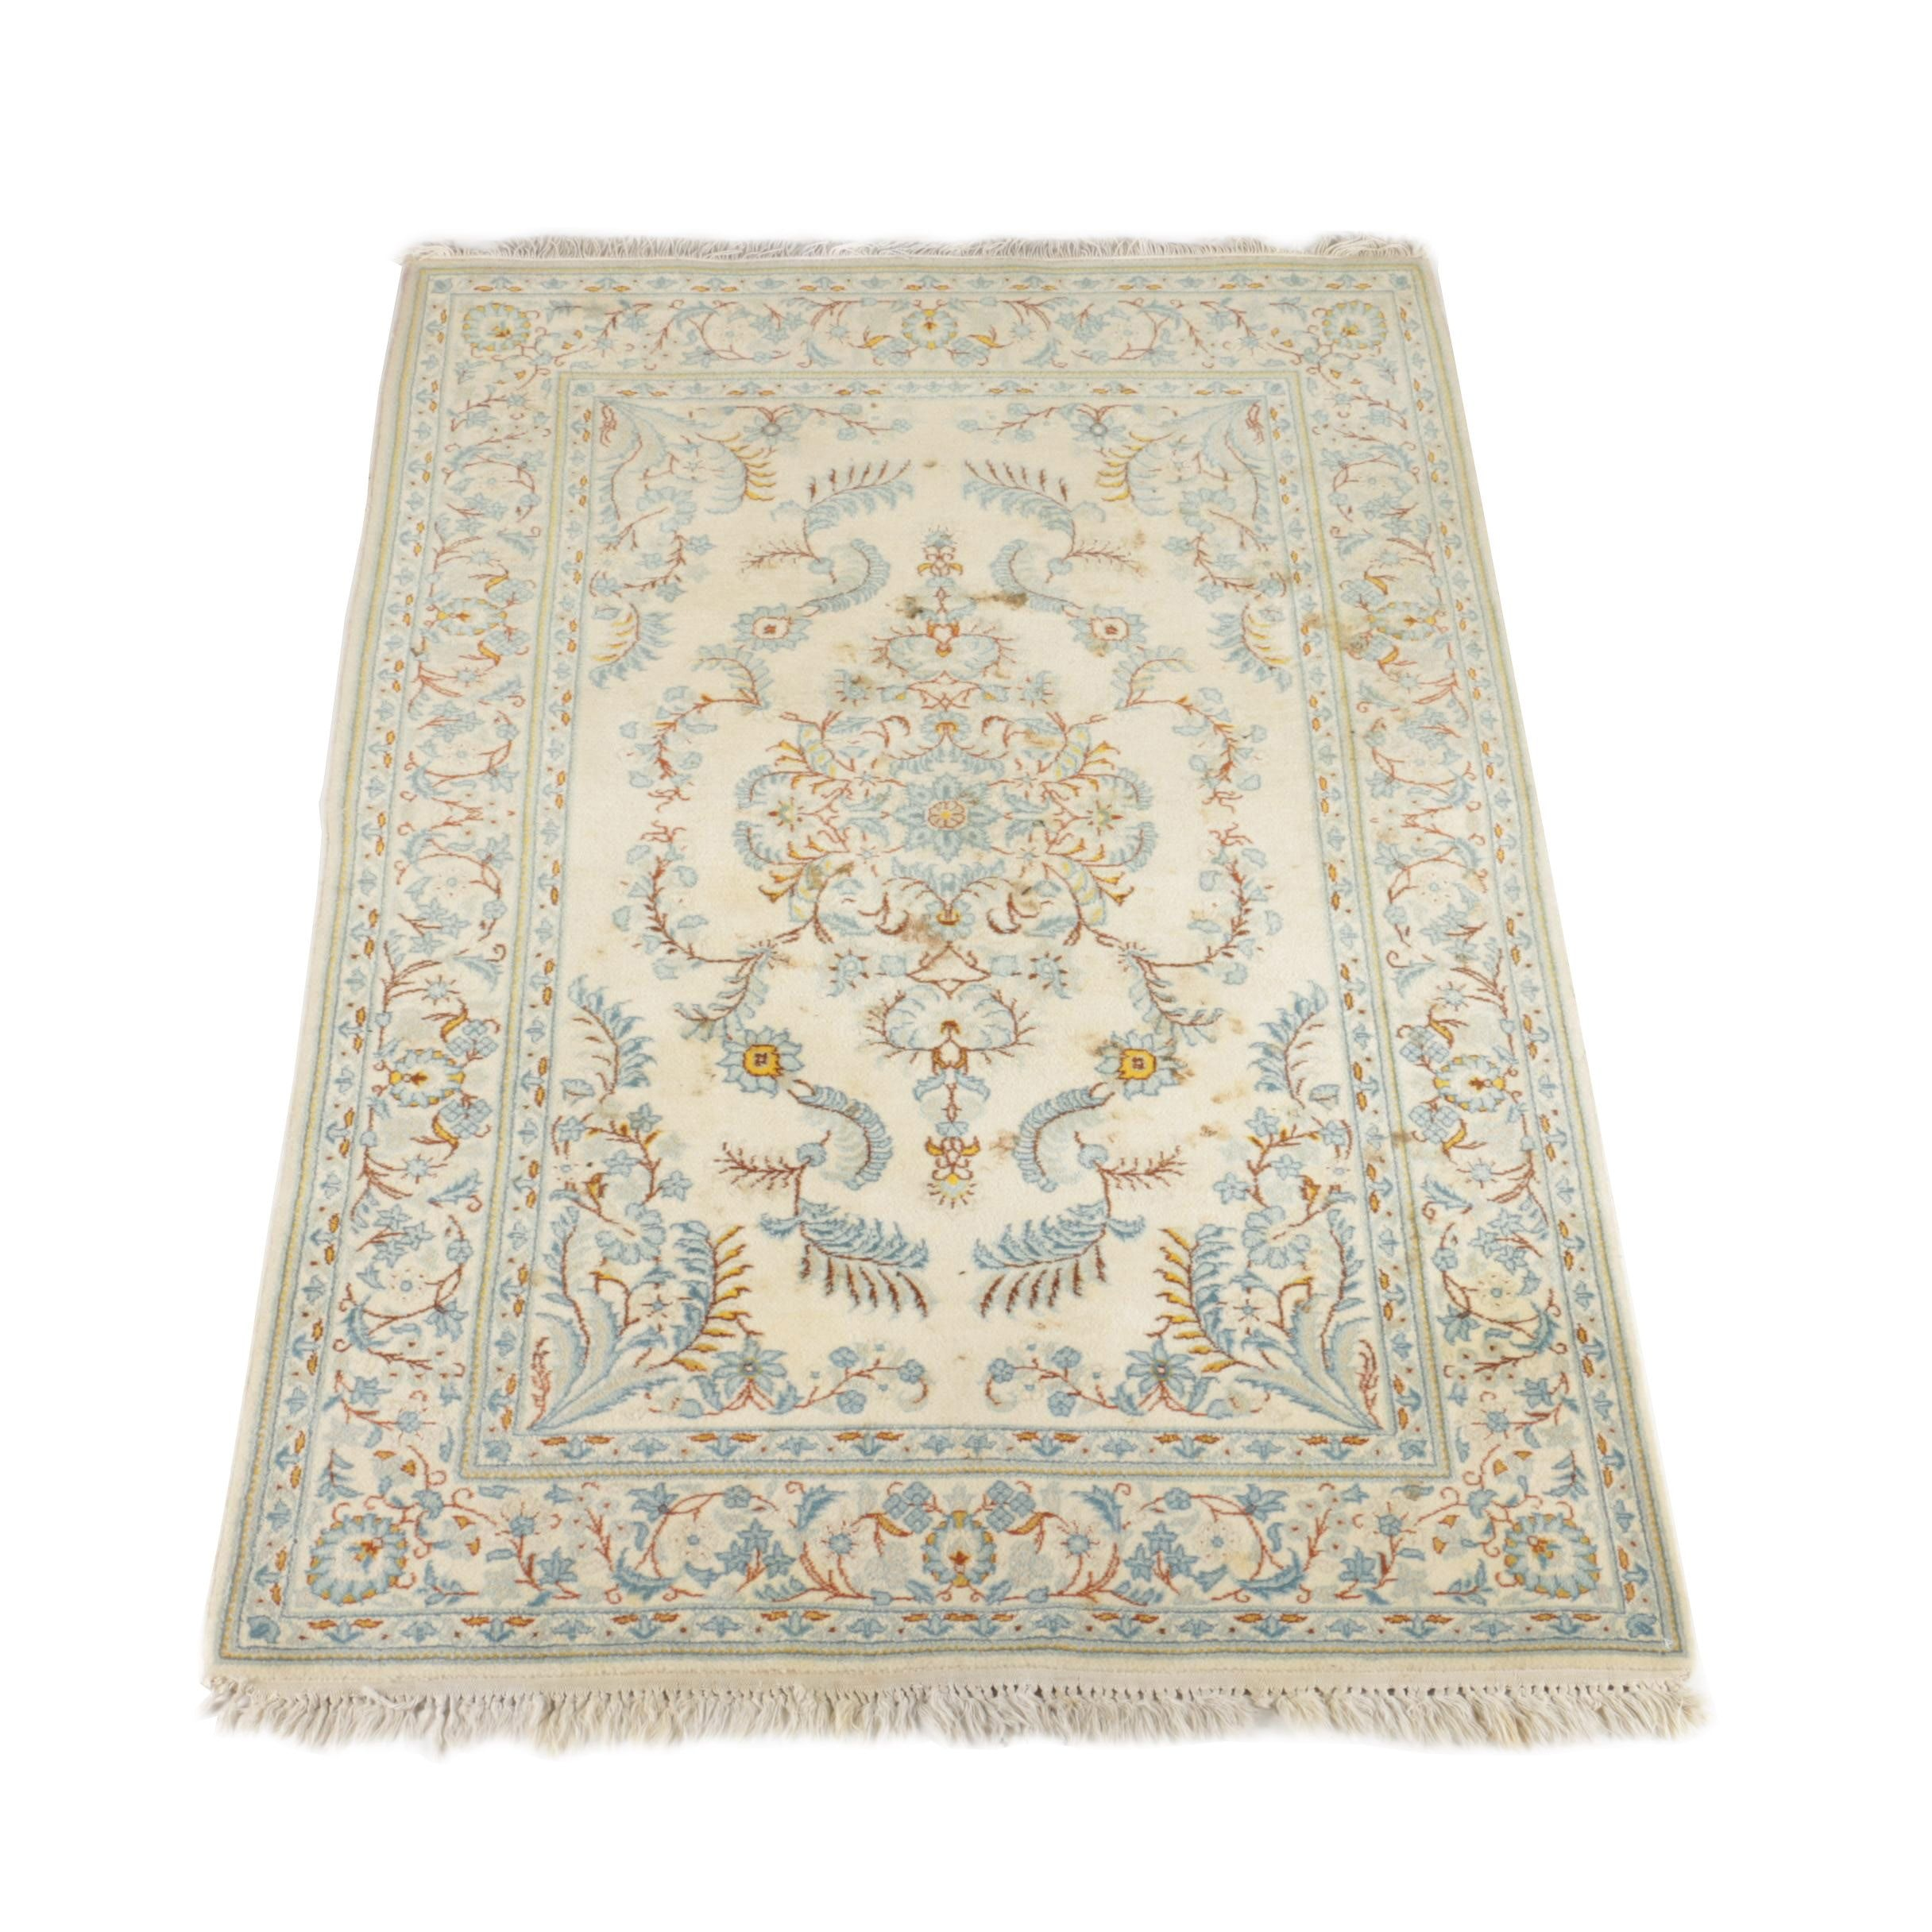 Hand-Knotted Kerman Style Wool Area Rug